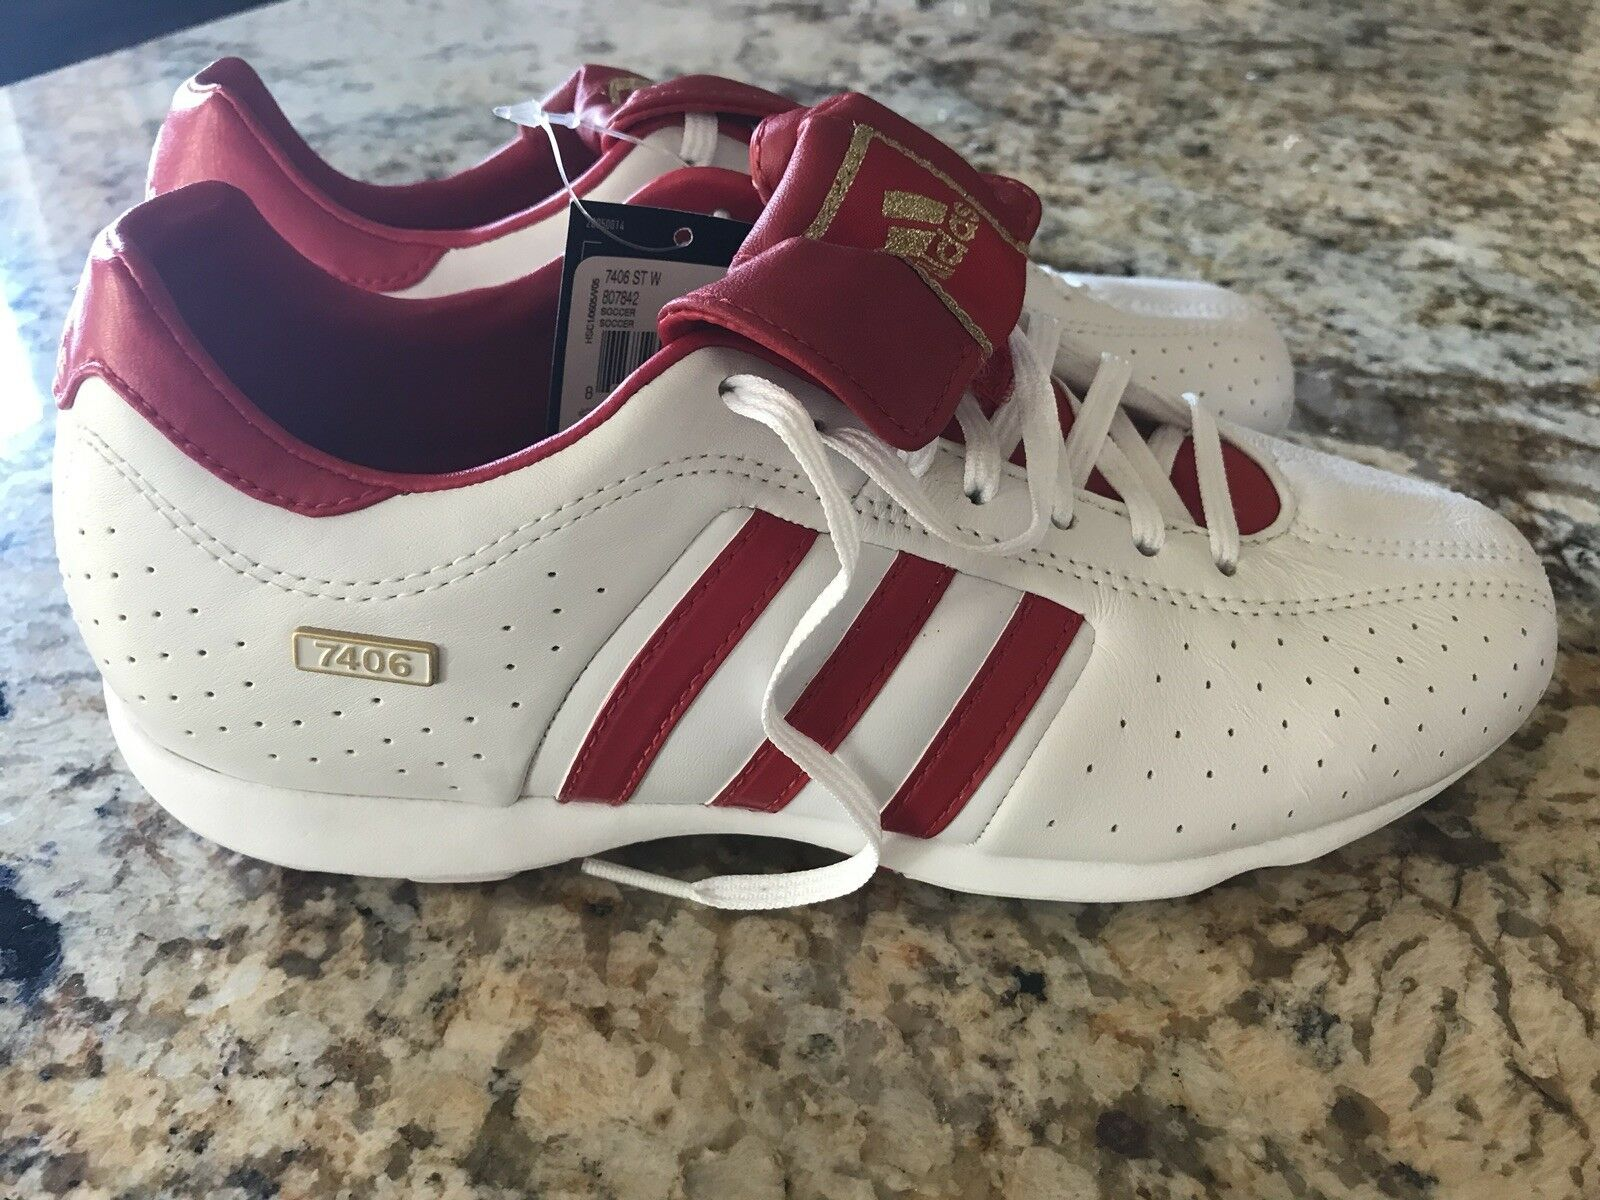 NWT Rare Adidas 7406 ST W 807842 White/Red 7.5 Indoor Soccer Shoes Size 7.5 White/Red 28fc2f